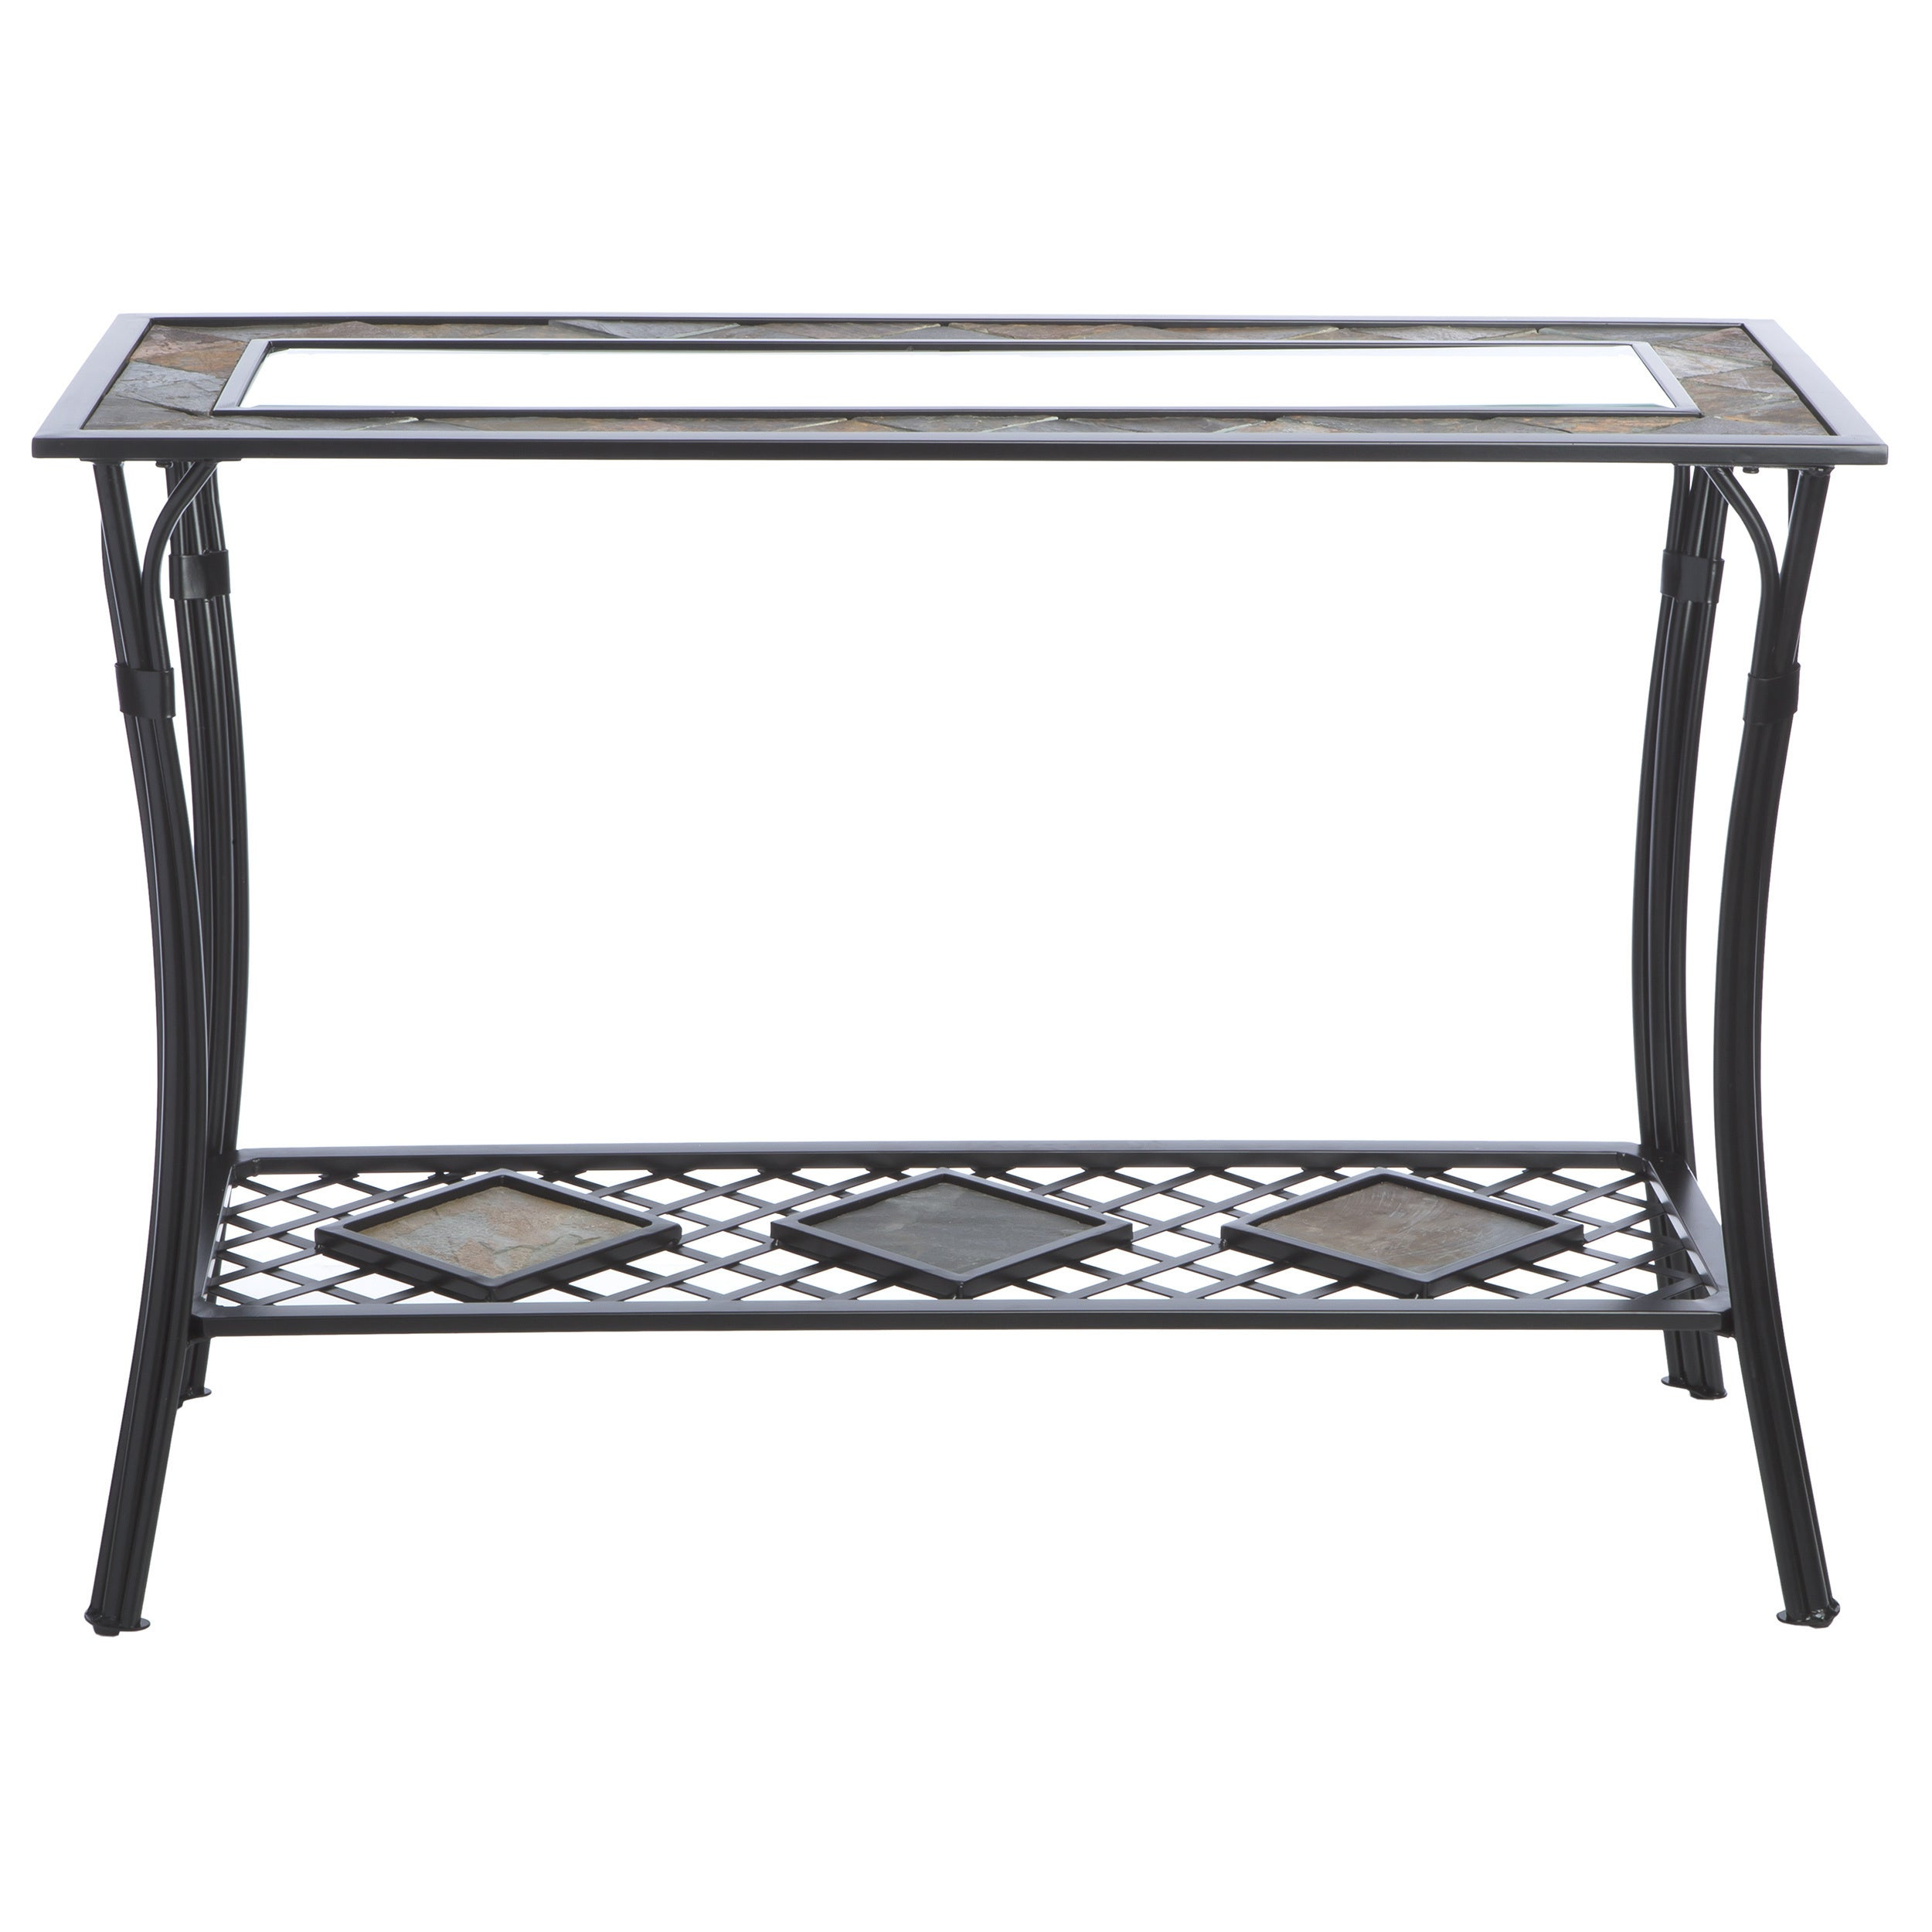 Shop Copper Grove Slate/ Glass/ Steel Sofa Table   Free Shipping Today    Overstock.com   3356598